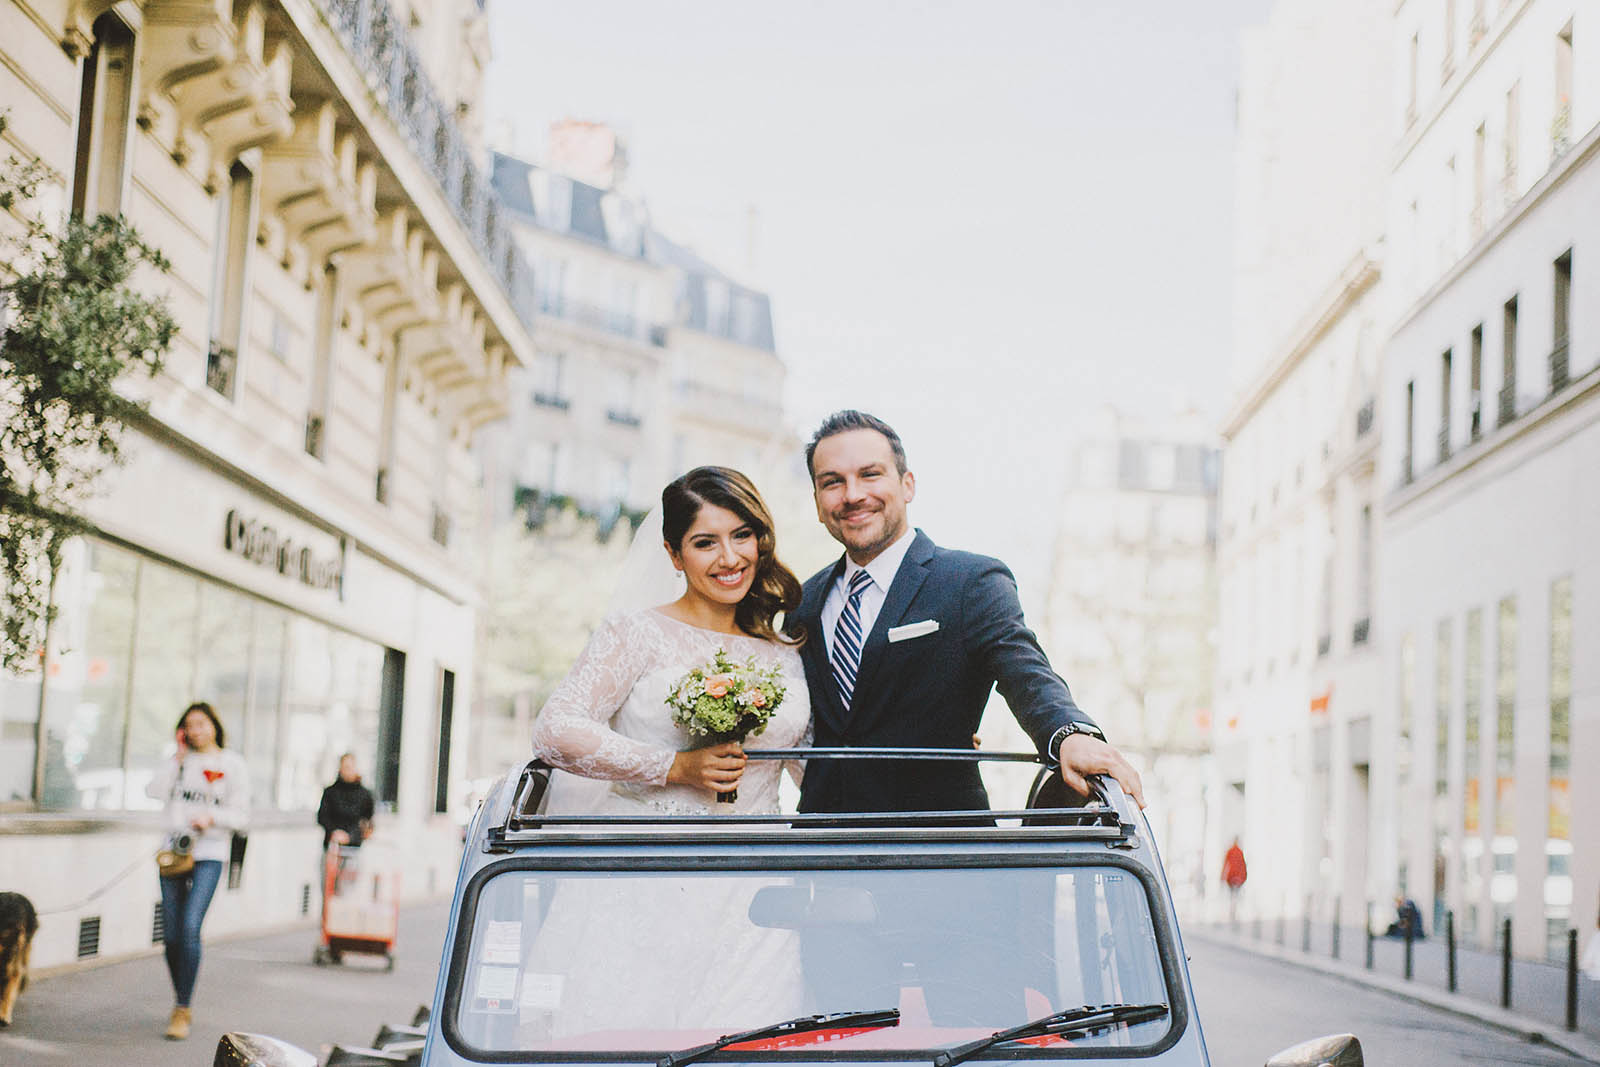 Bride and Groom riding in a 2CV | Springtime Paris Elopement at Parc des Buttes Chaumont